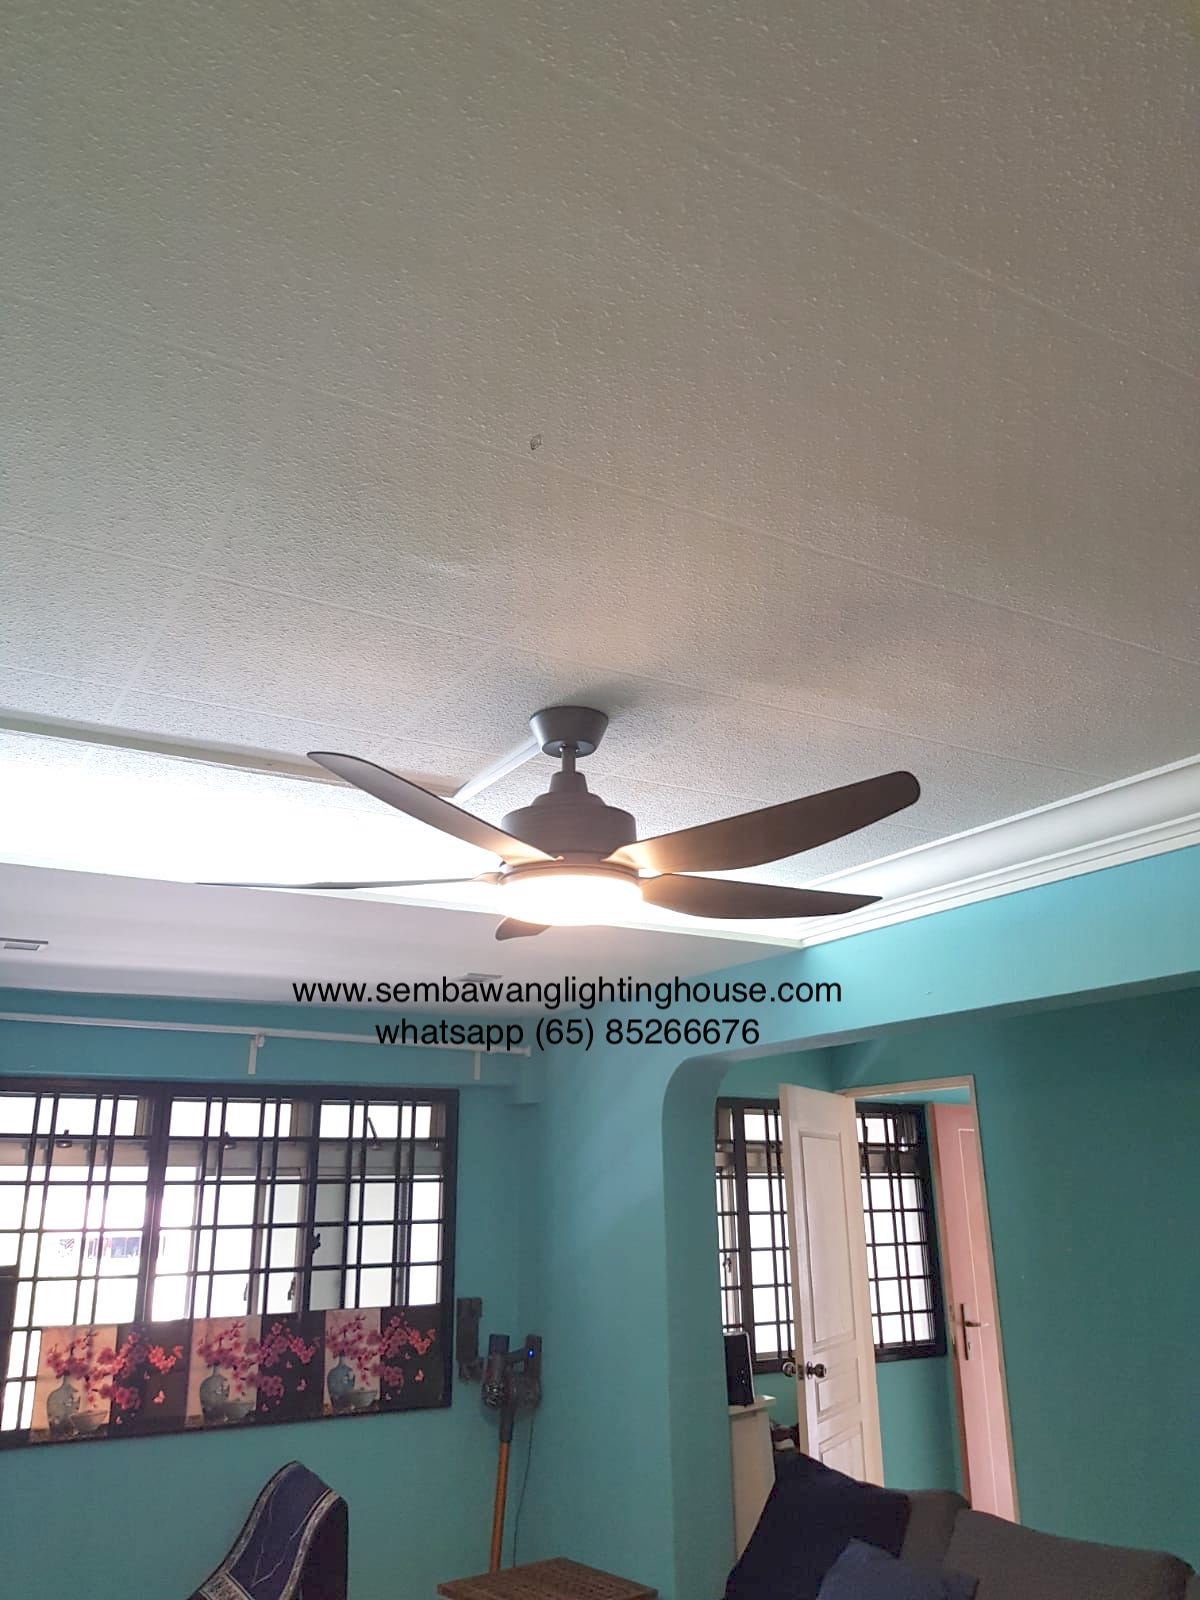 crestar-airis-ceiling-fan-sample-light-wood-sembawang-lighting-house-04.jpg